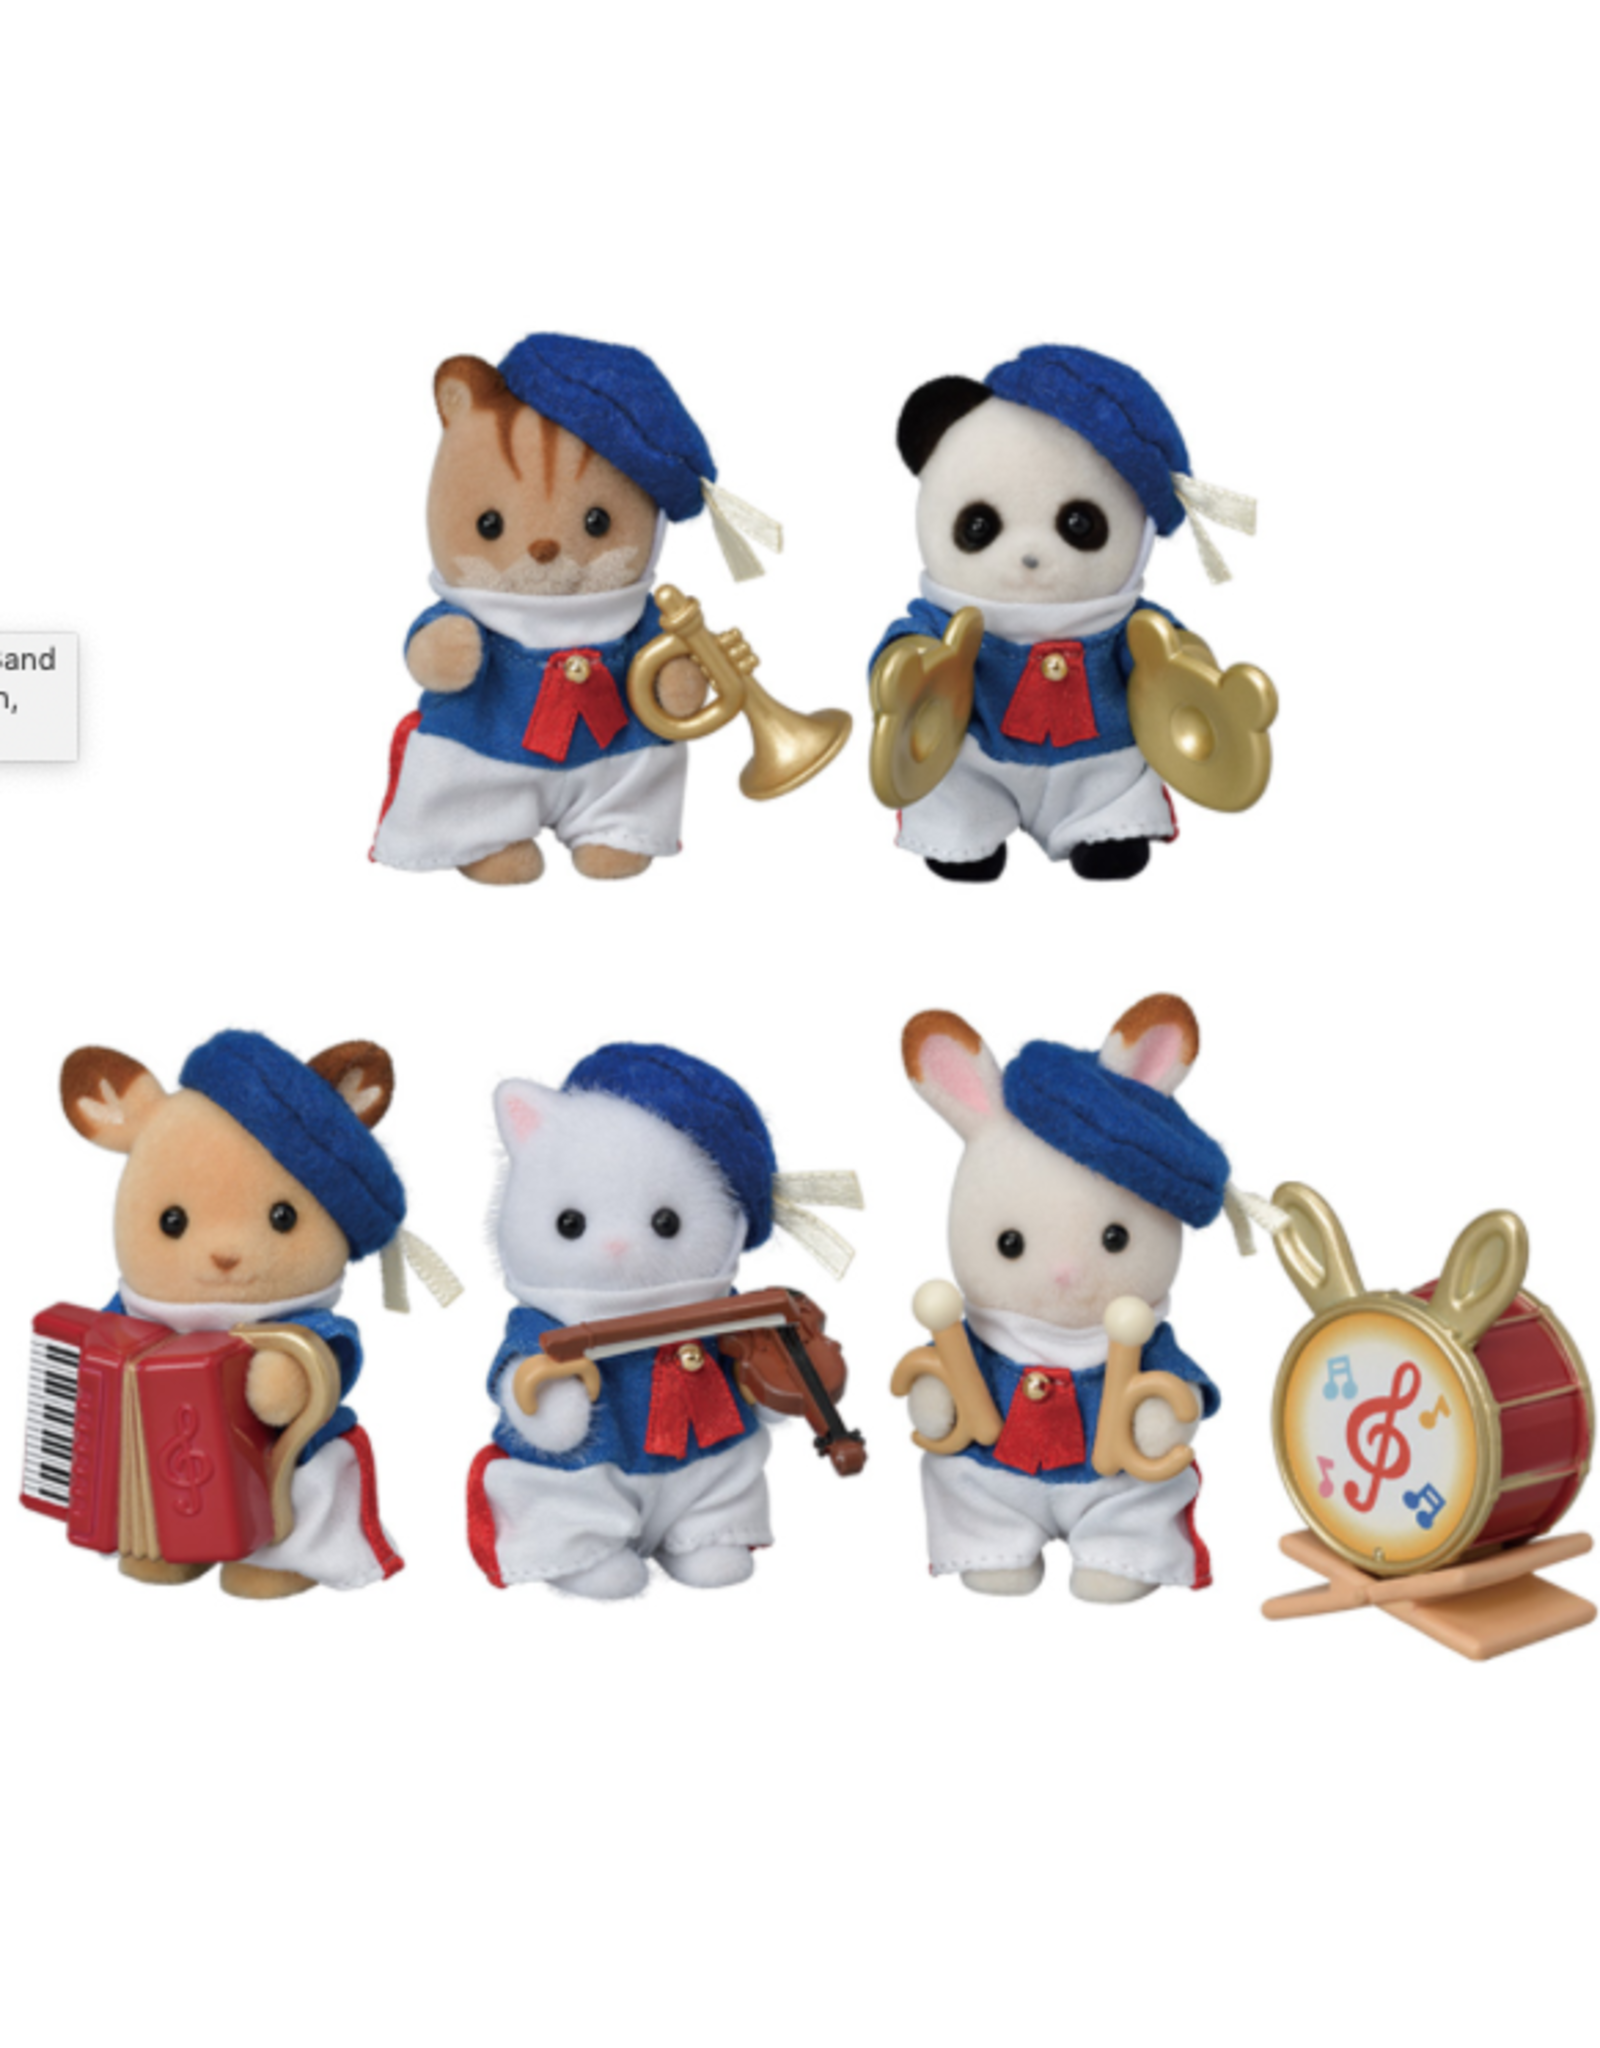 Calico Critters Calico Critters Baby Celebration Marching Band